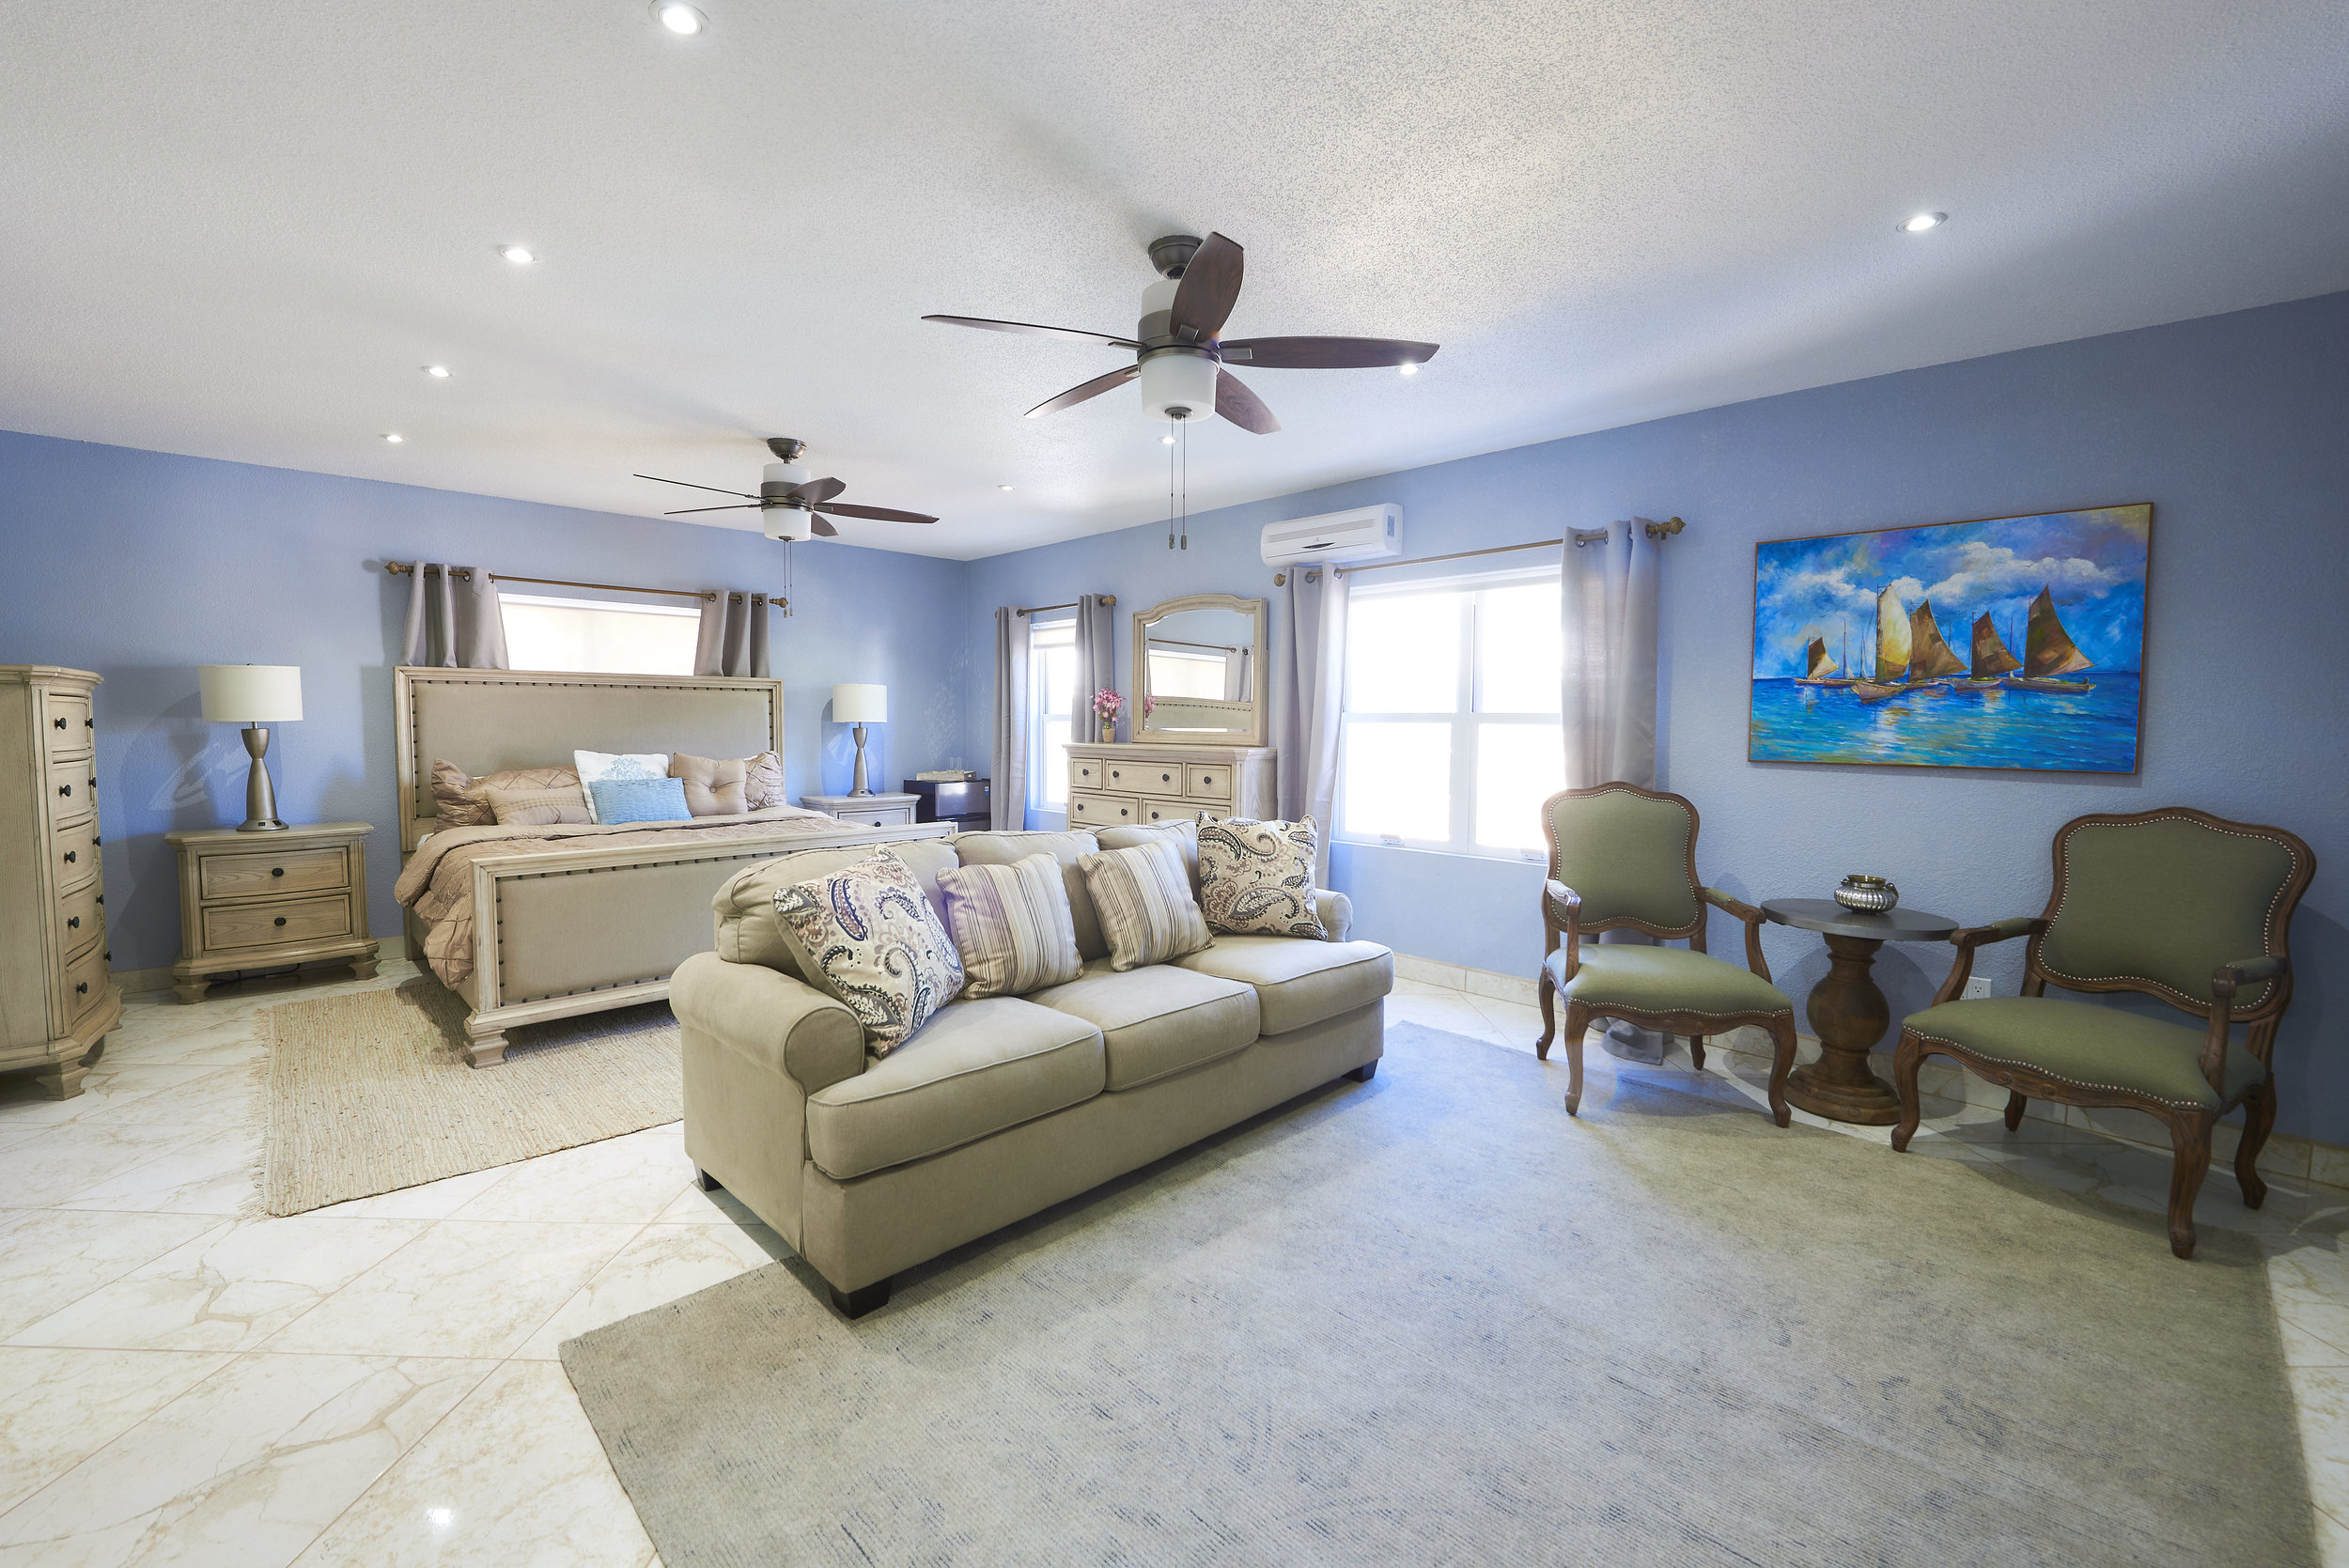 The Sapphire -Luxury Suite - A true gem, the sapphire Luxury Suite offers a King sized bed, spacious living area,, large bathroom and sofa bed. Comfortably elegant living